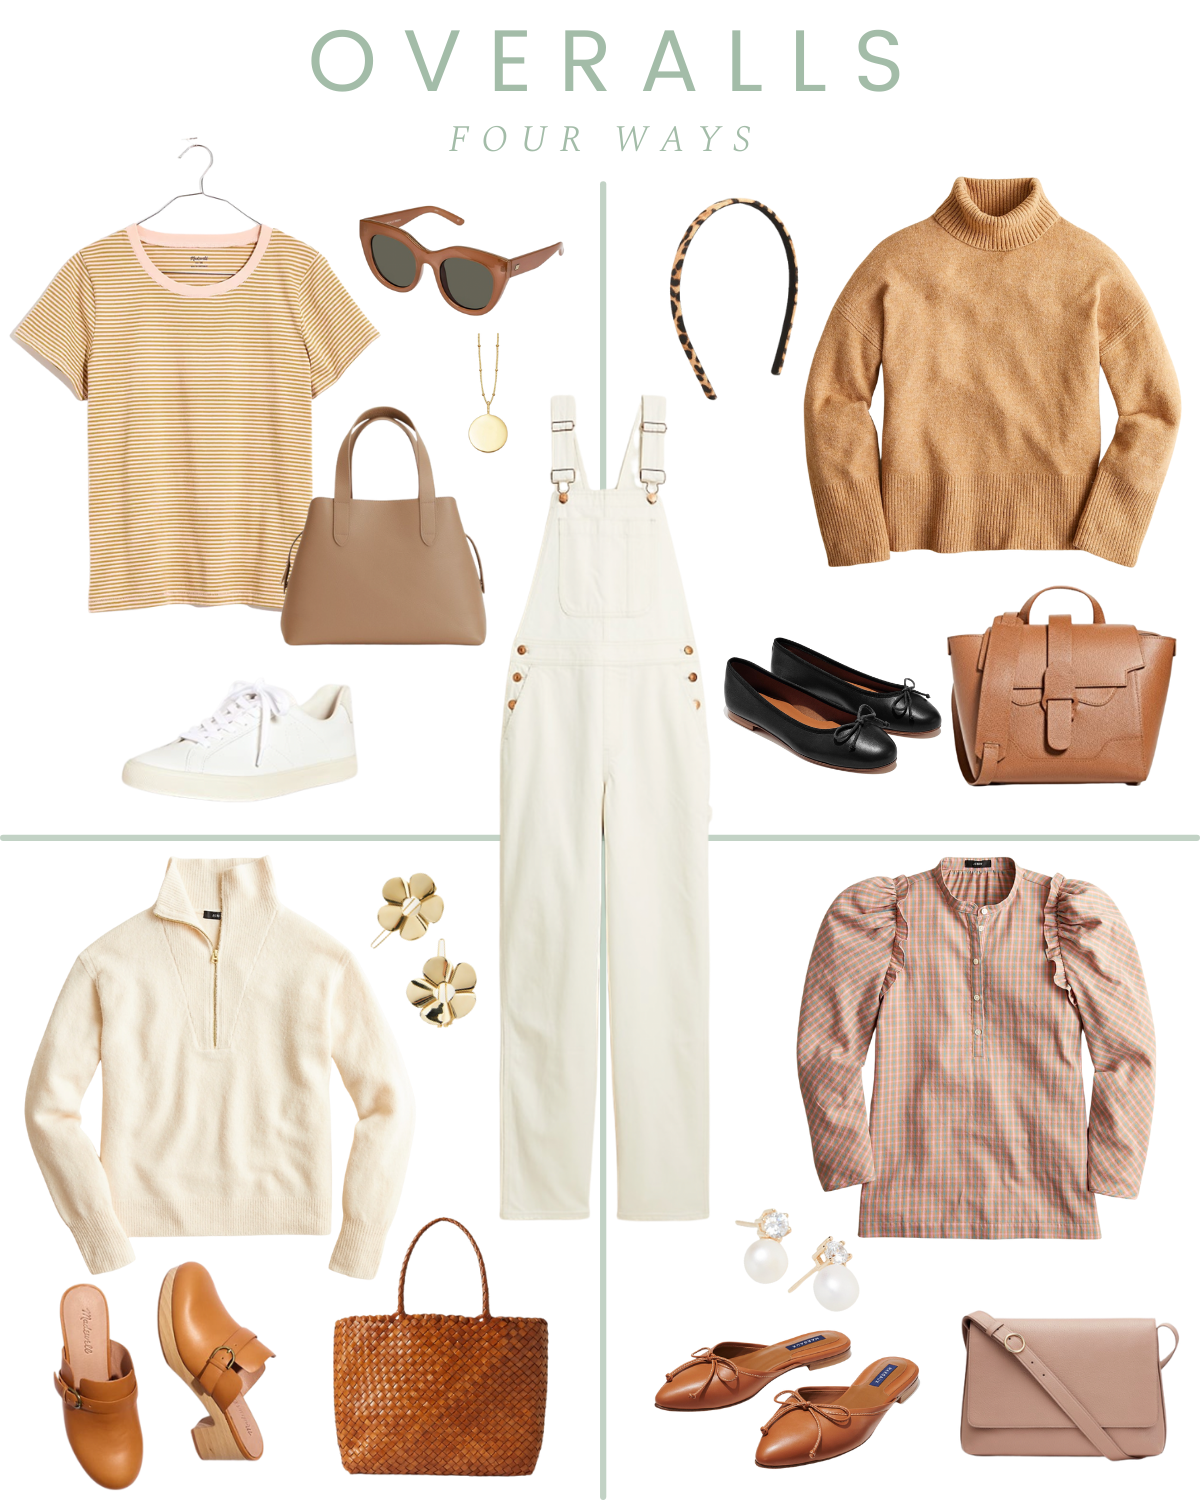 How To Style Overalls Four Ways